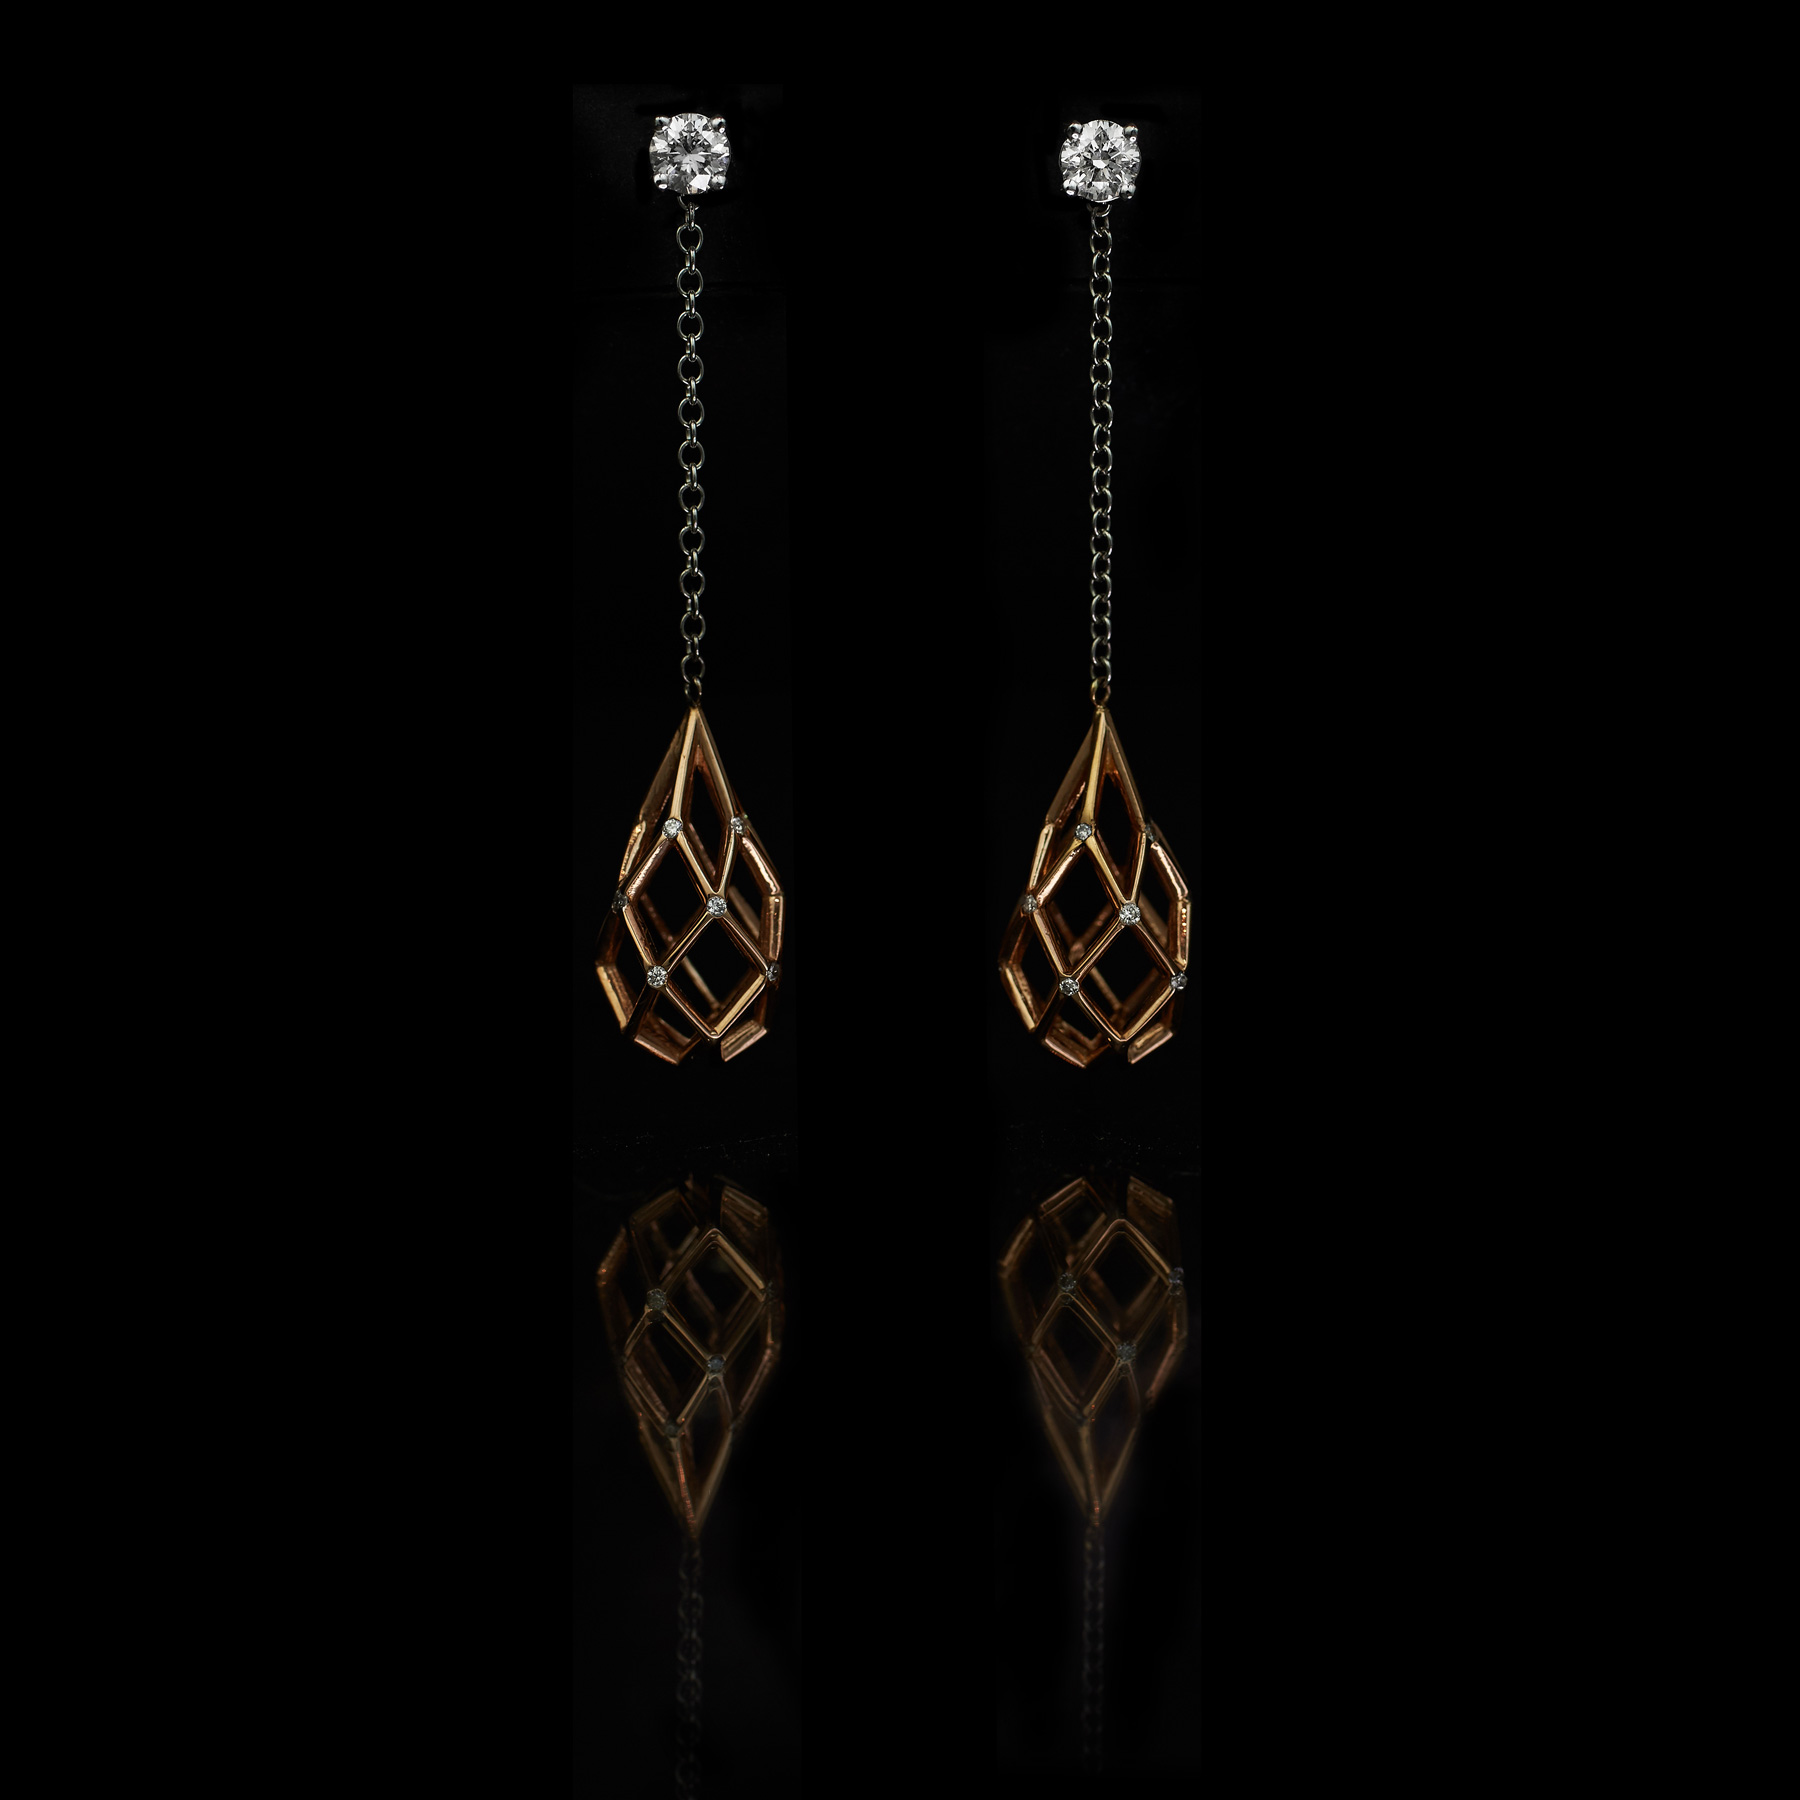 guyandmax_birdcage_earrings_8988-002